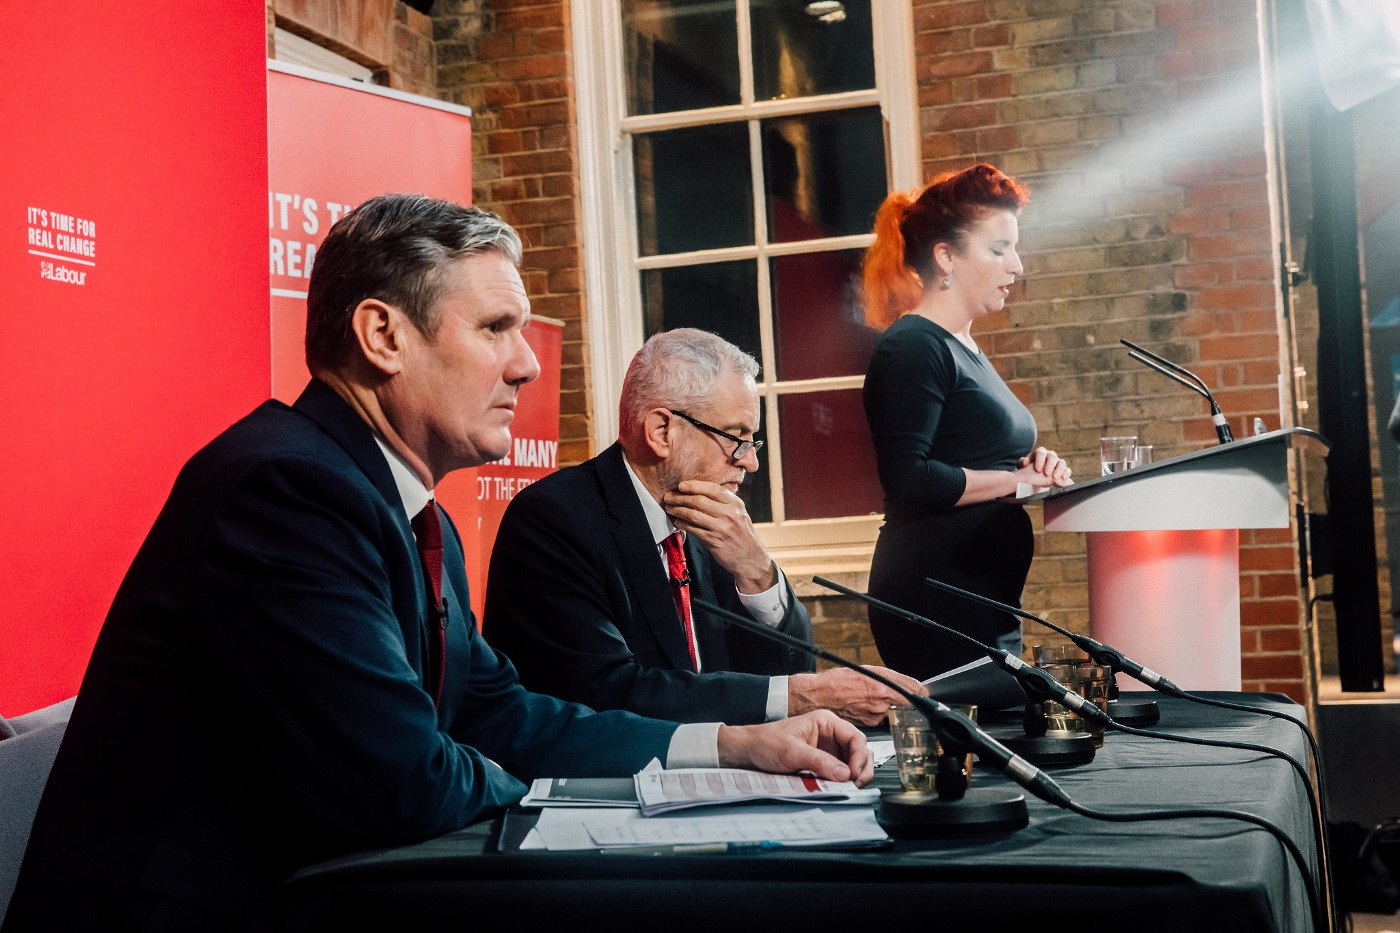 Jeremy Corbyn and Keir Starmer at a press conference